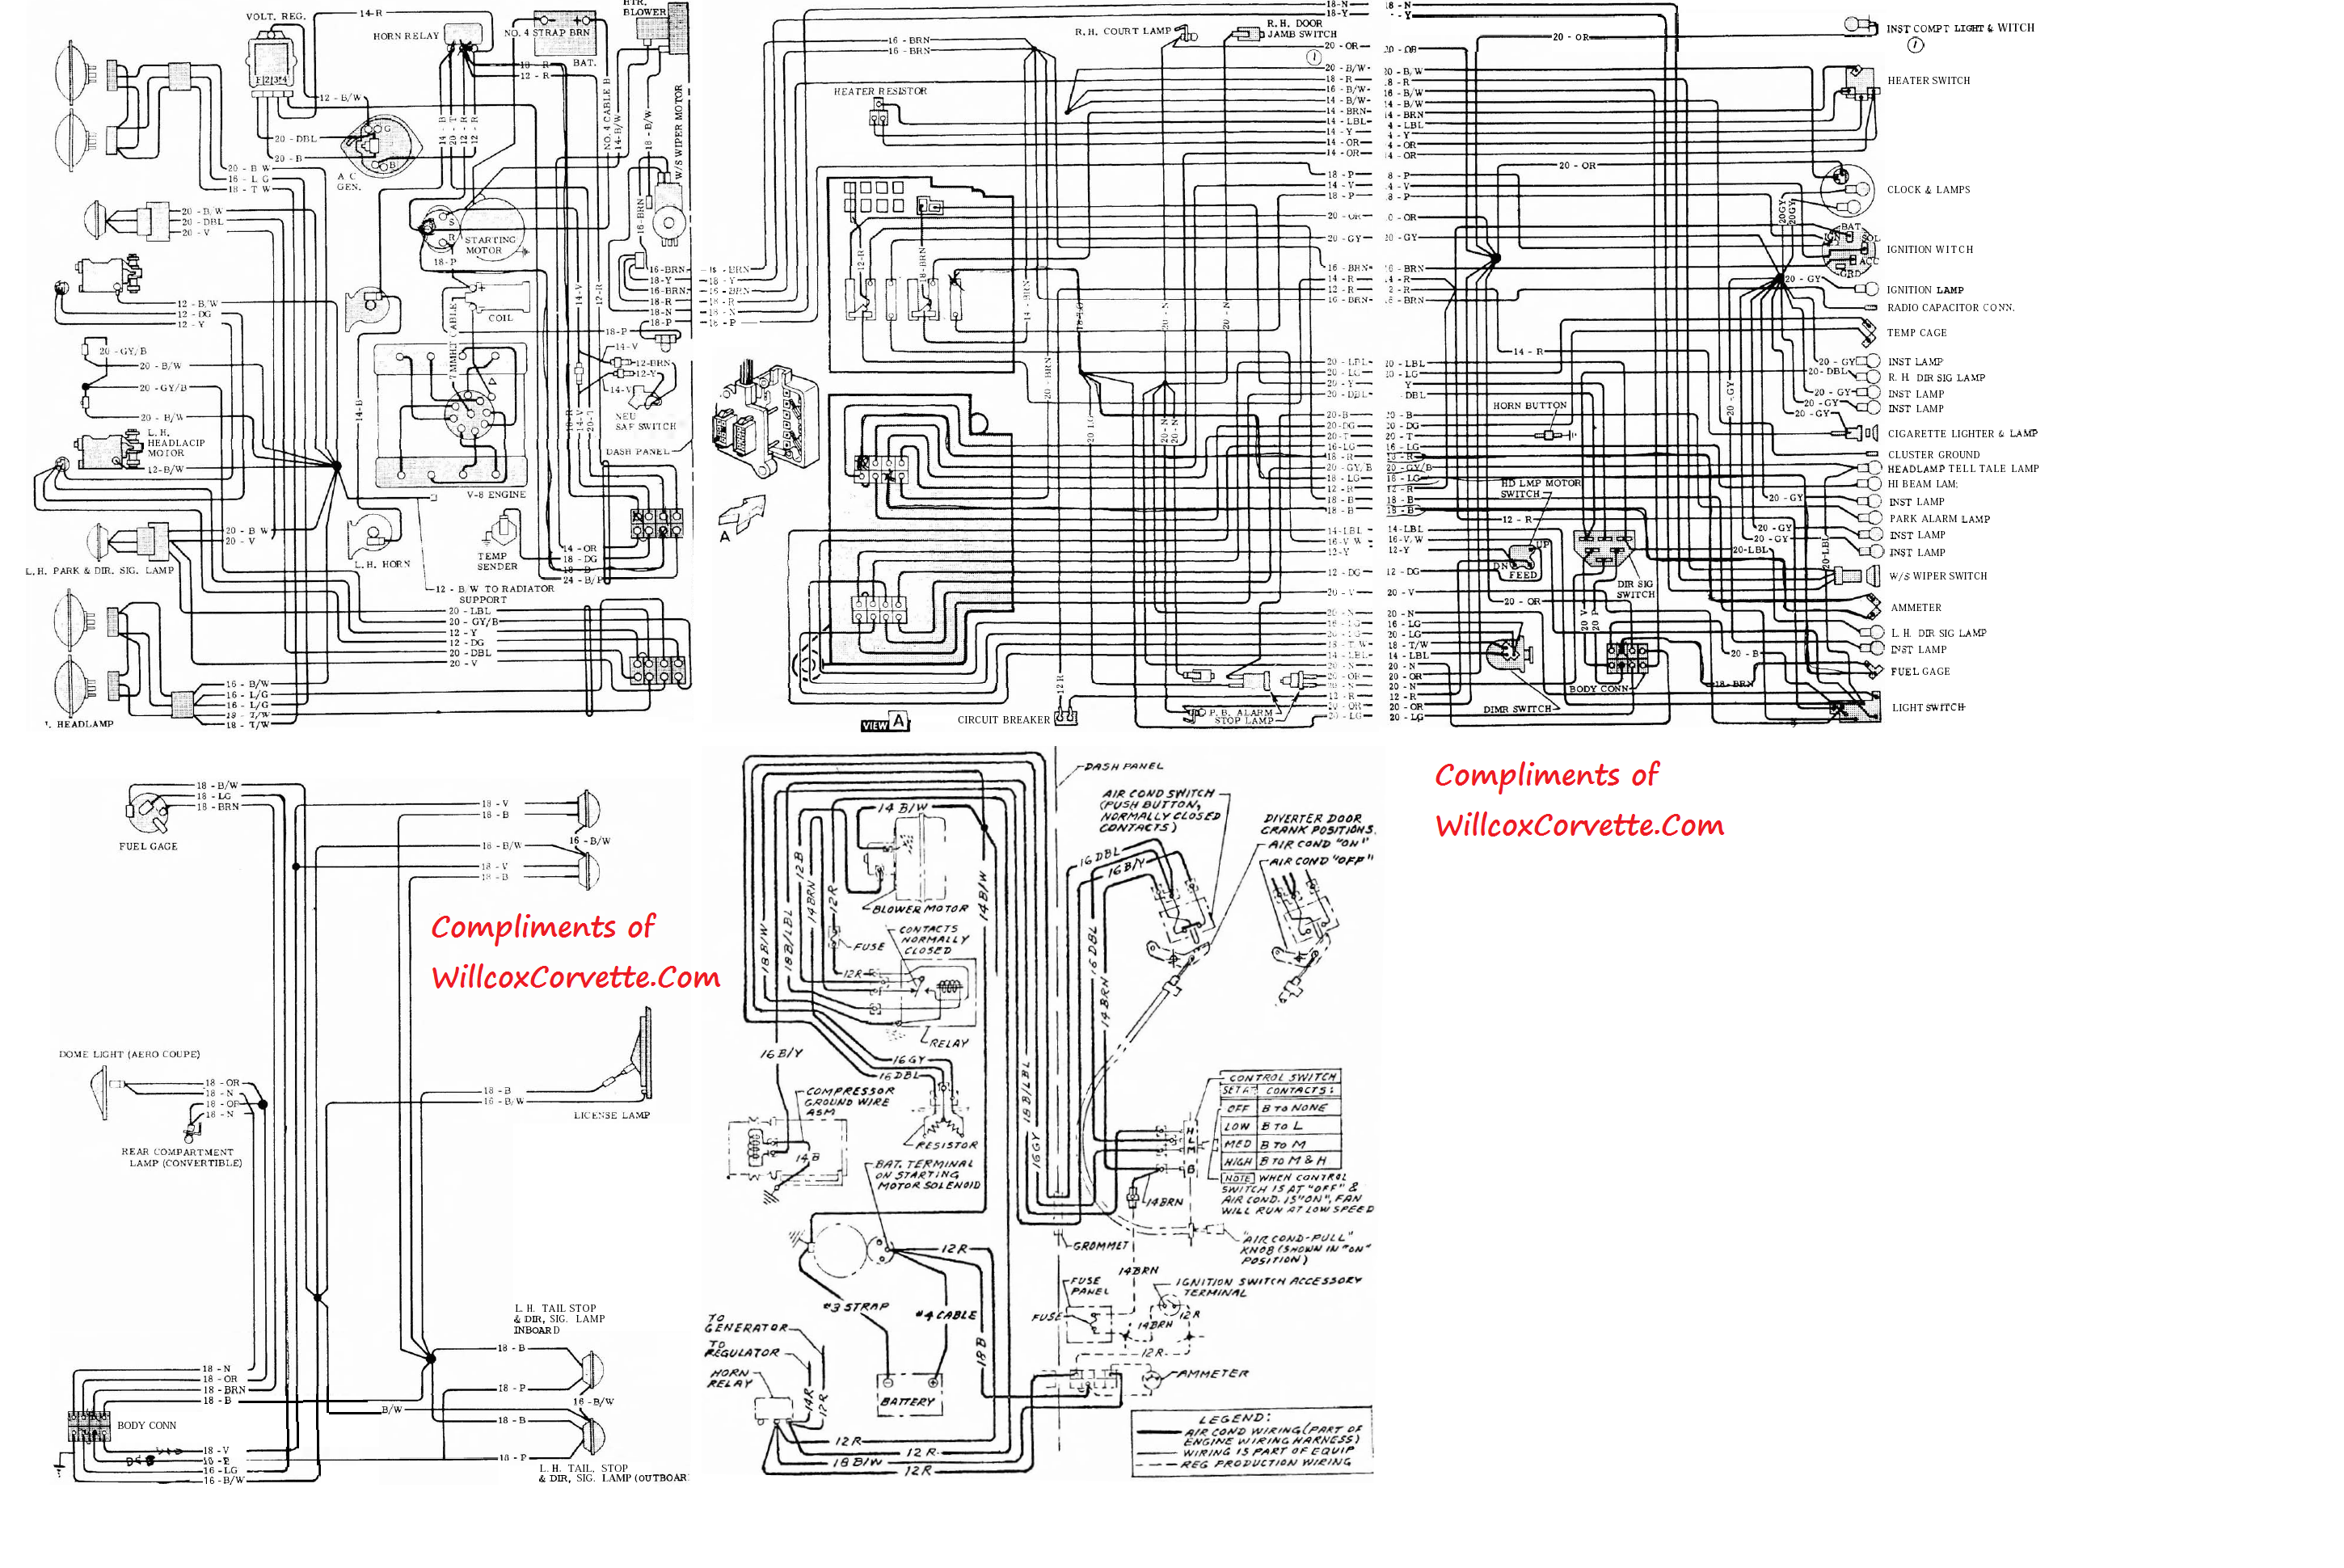 92 corvette wiring diagram circuit diagram template 1992 corvette wiring diagram wipers 92 corvette wiring diagram 11 smo zionsnowboards de \\u2022